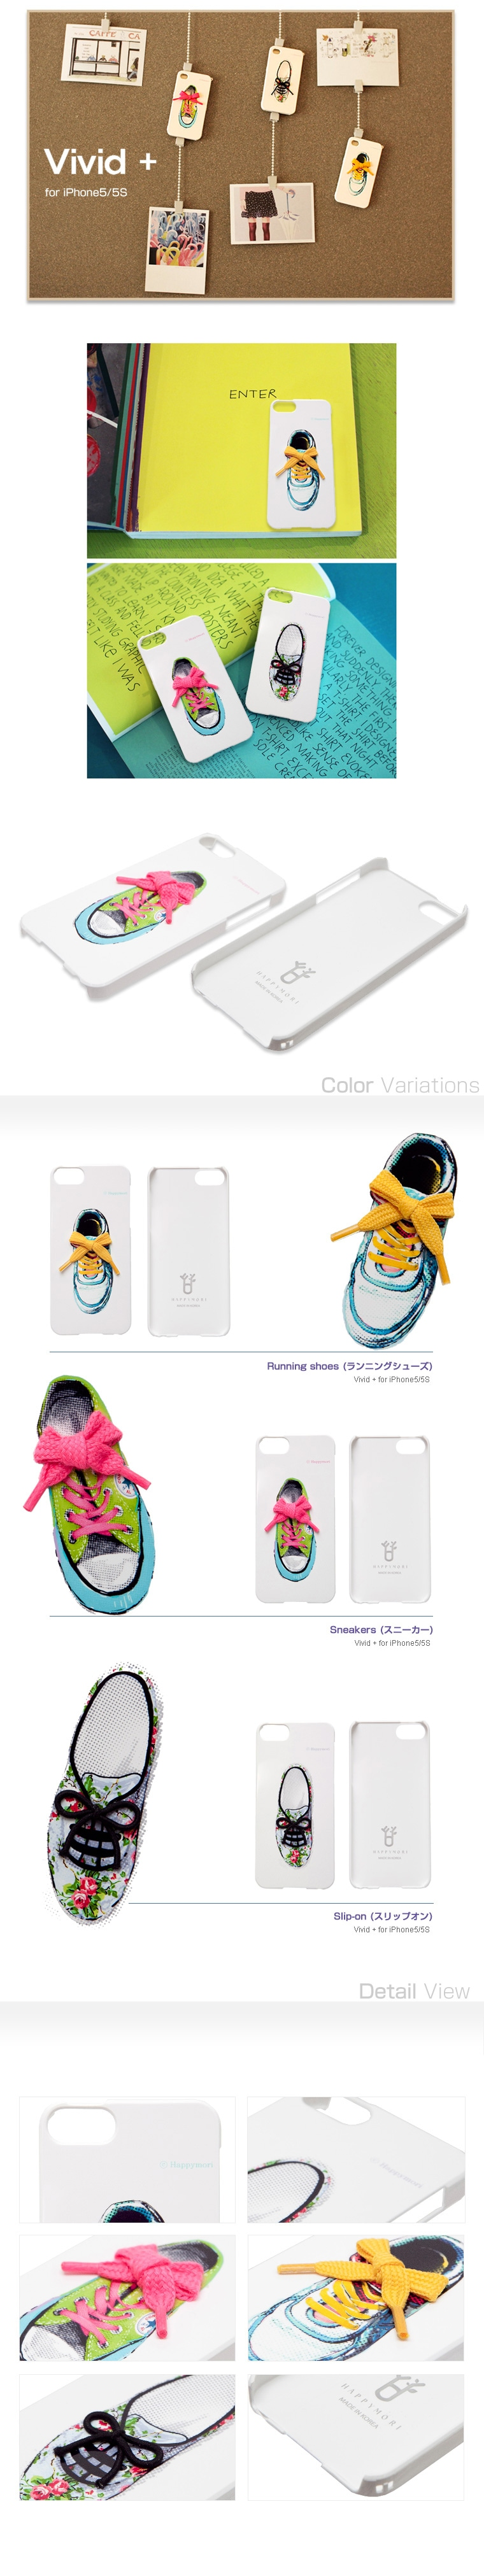 Happymori iPhone5S/5 Blossom Bar (ブロッサムバー)